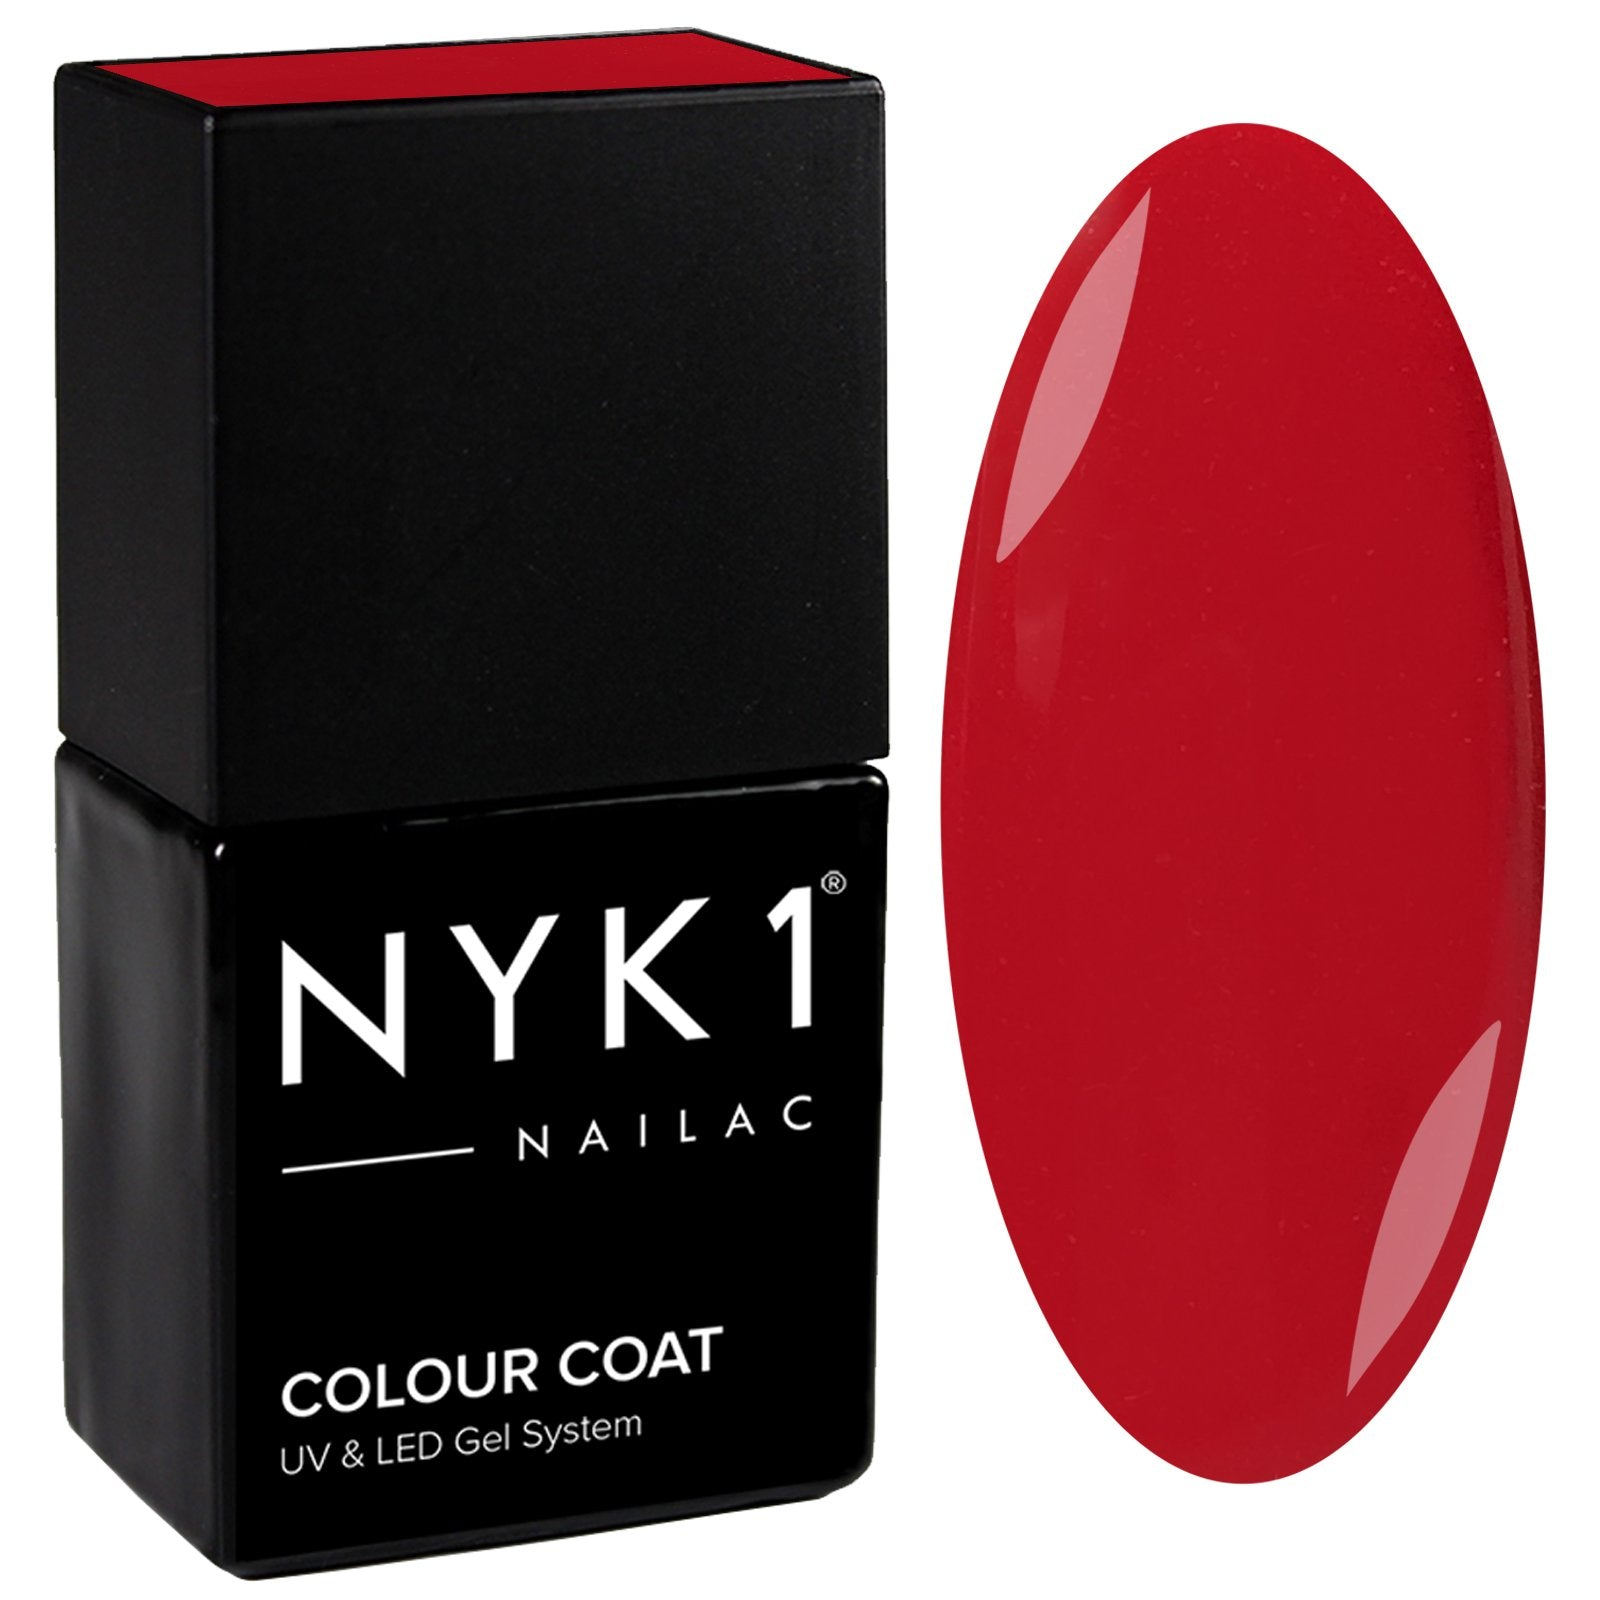 NYK1 Nailac Deep Red Carpet Dark Gel Nail Polish